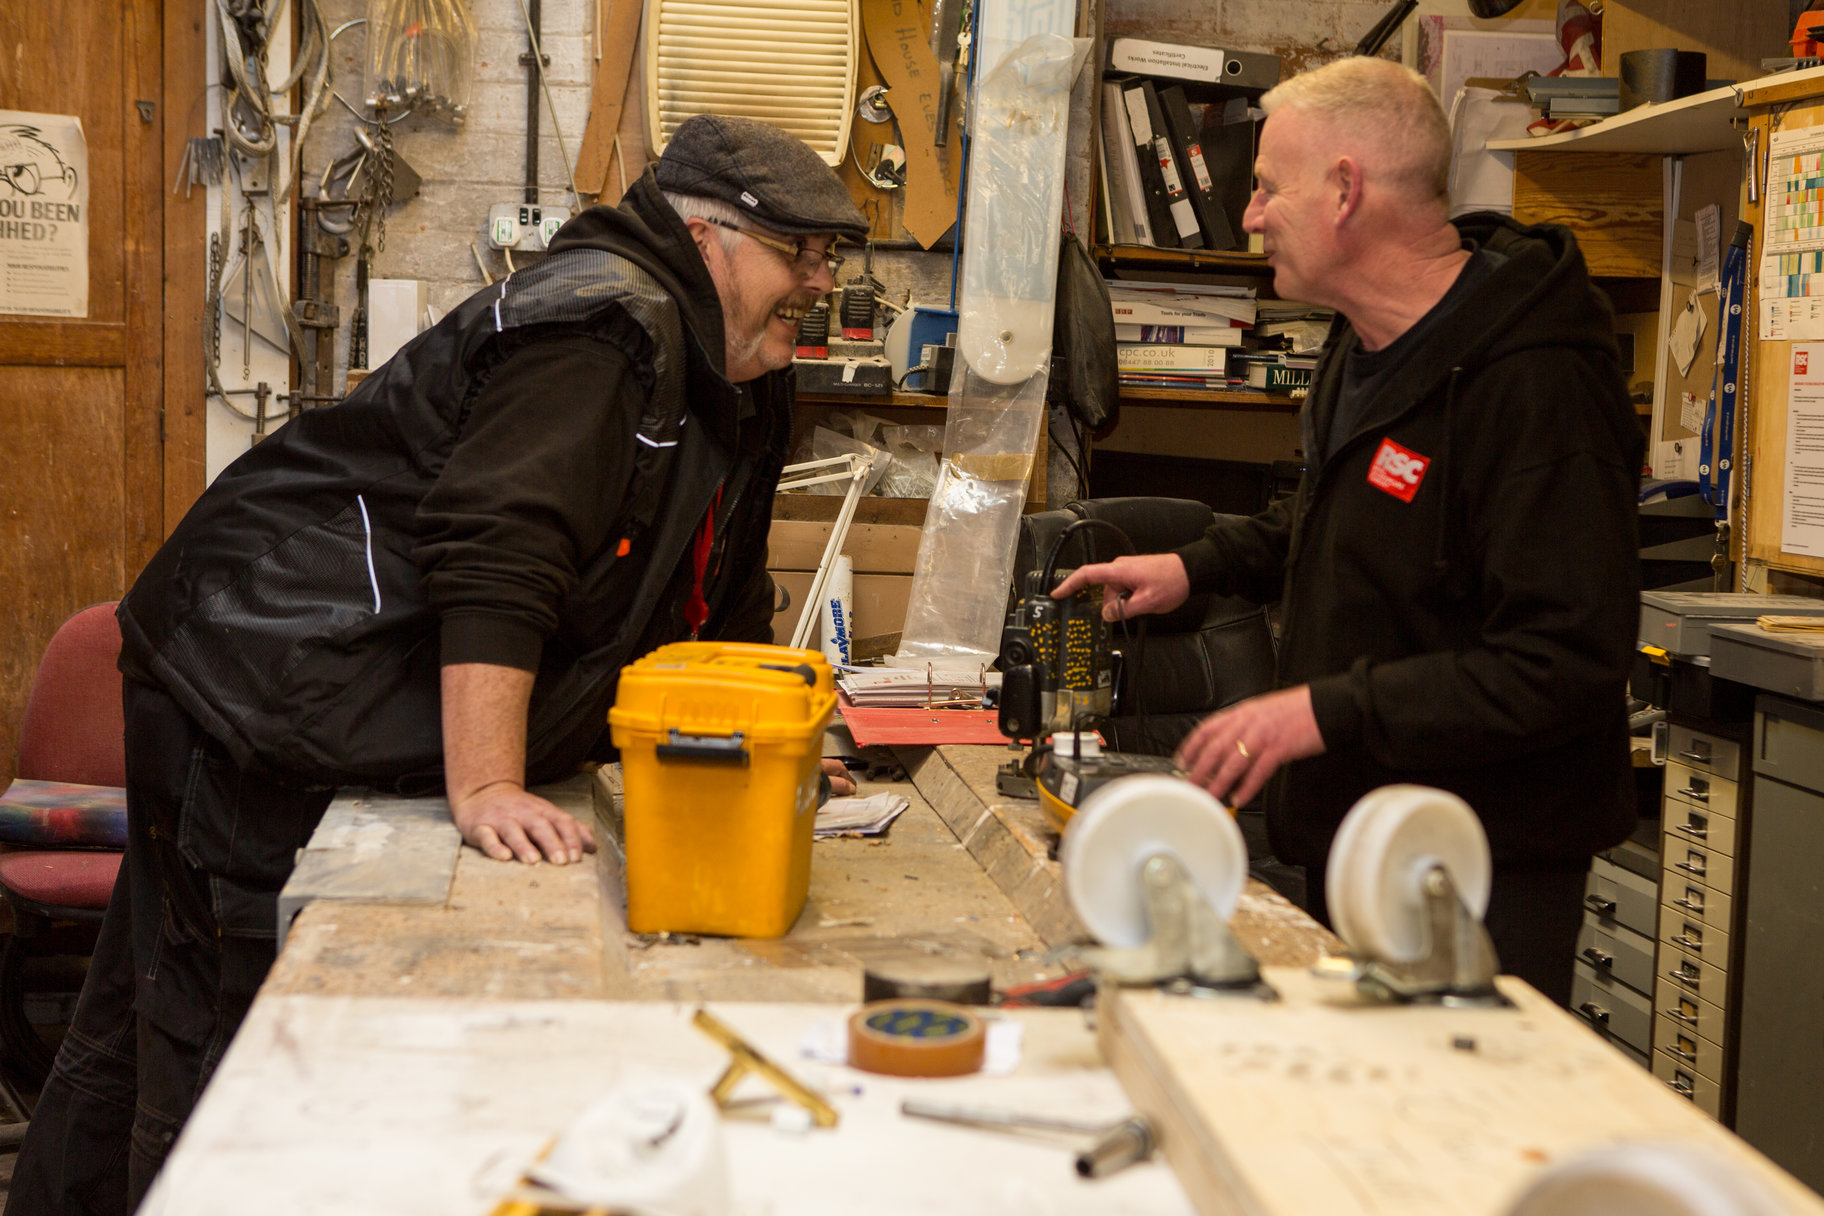 two men in a workshop talking and laughing